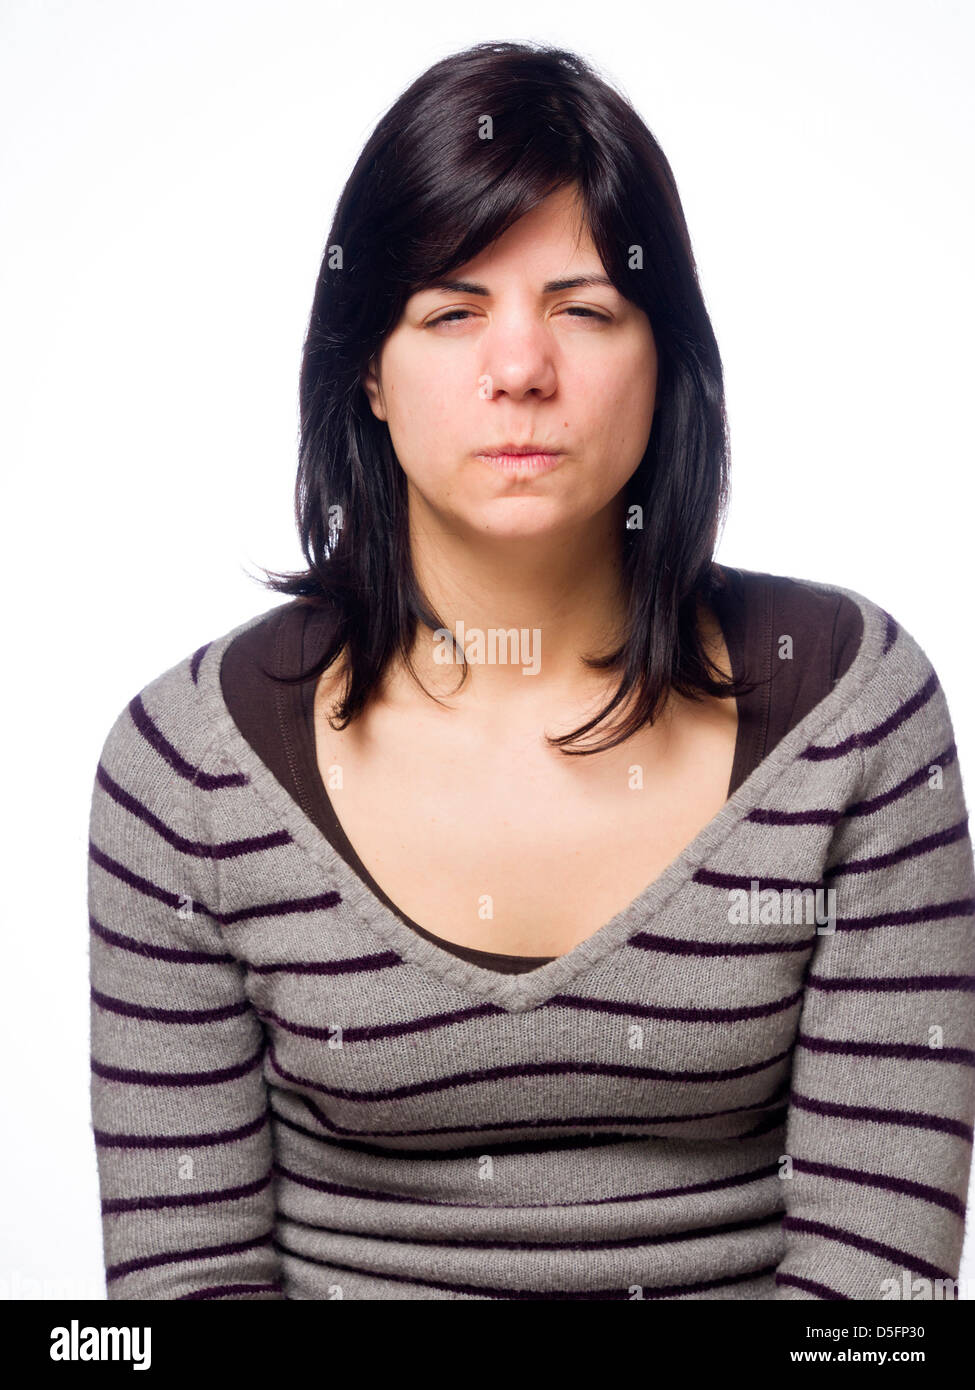 Angry young woman sulking - Stock Image